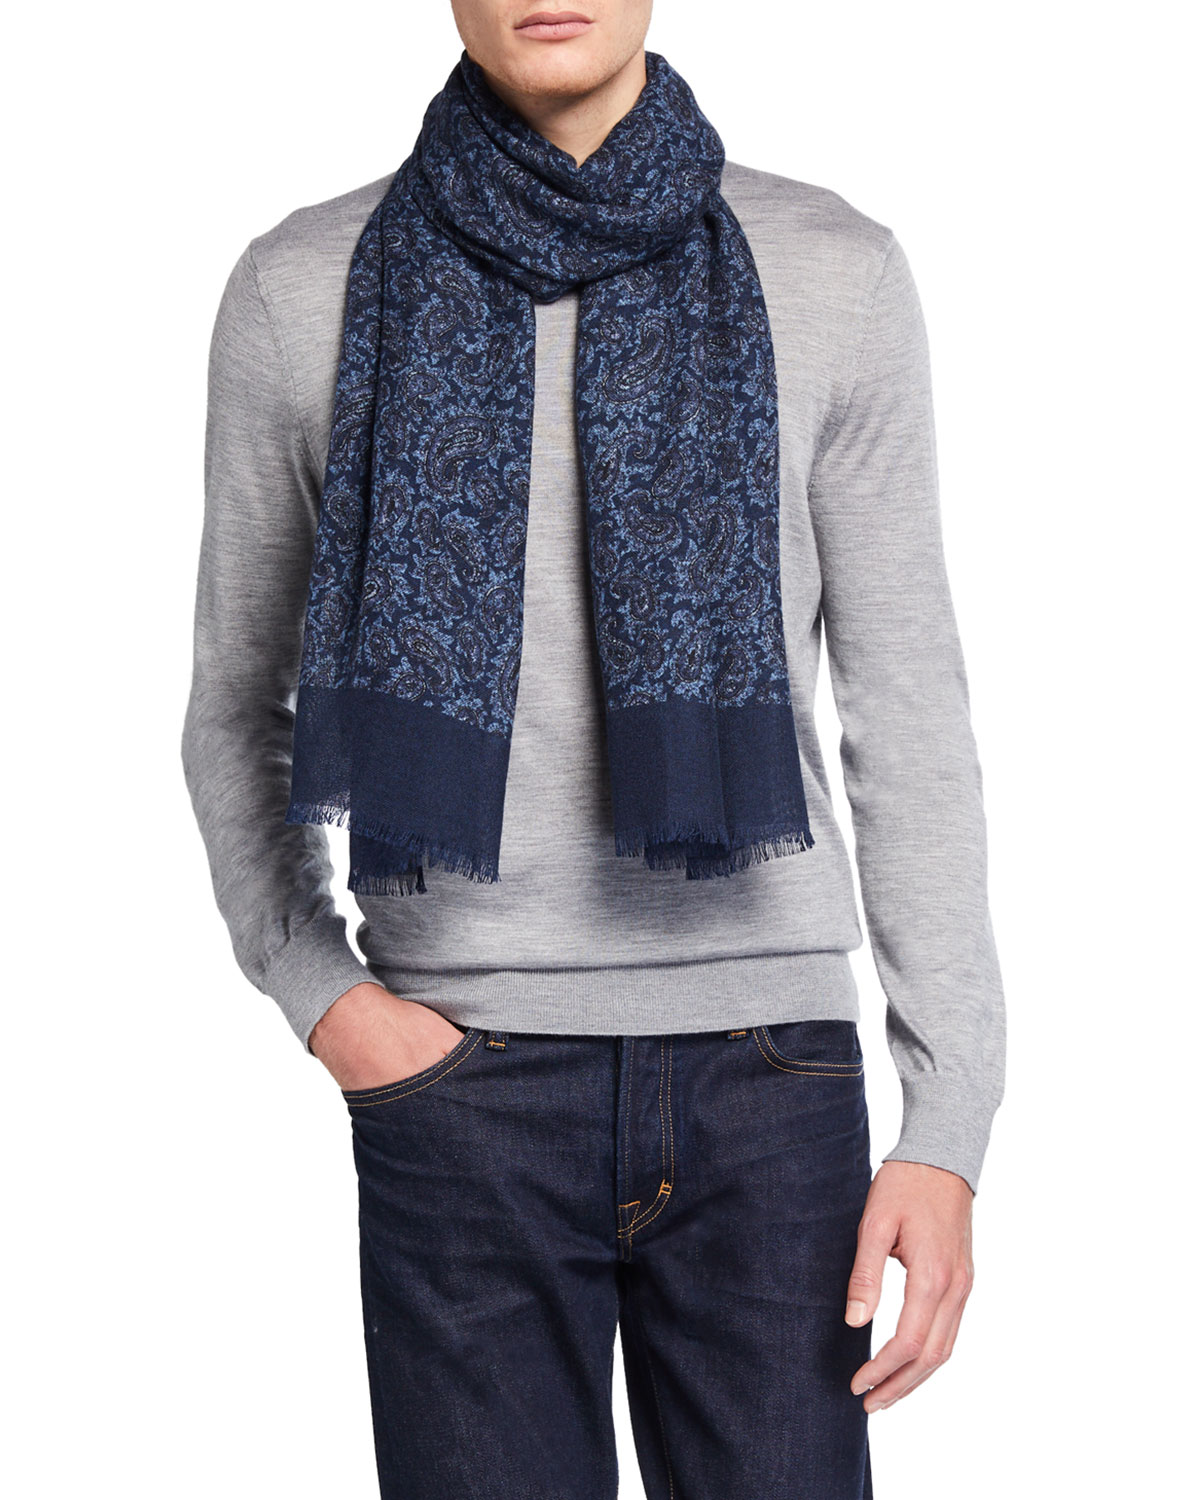 Isaia Accessories MEN'S PAISLEY CASHMERE SCARF